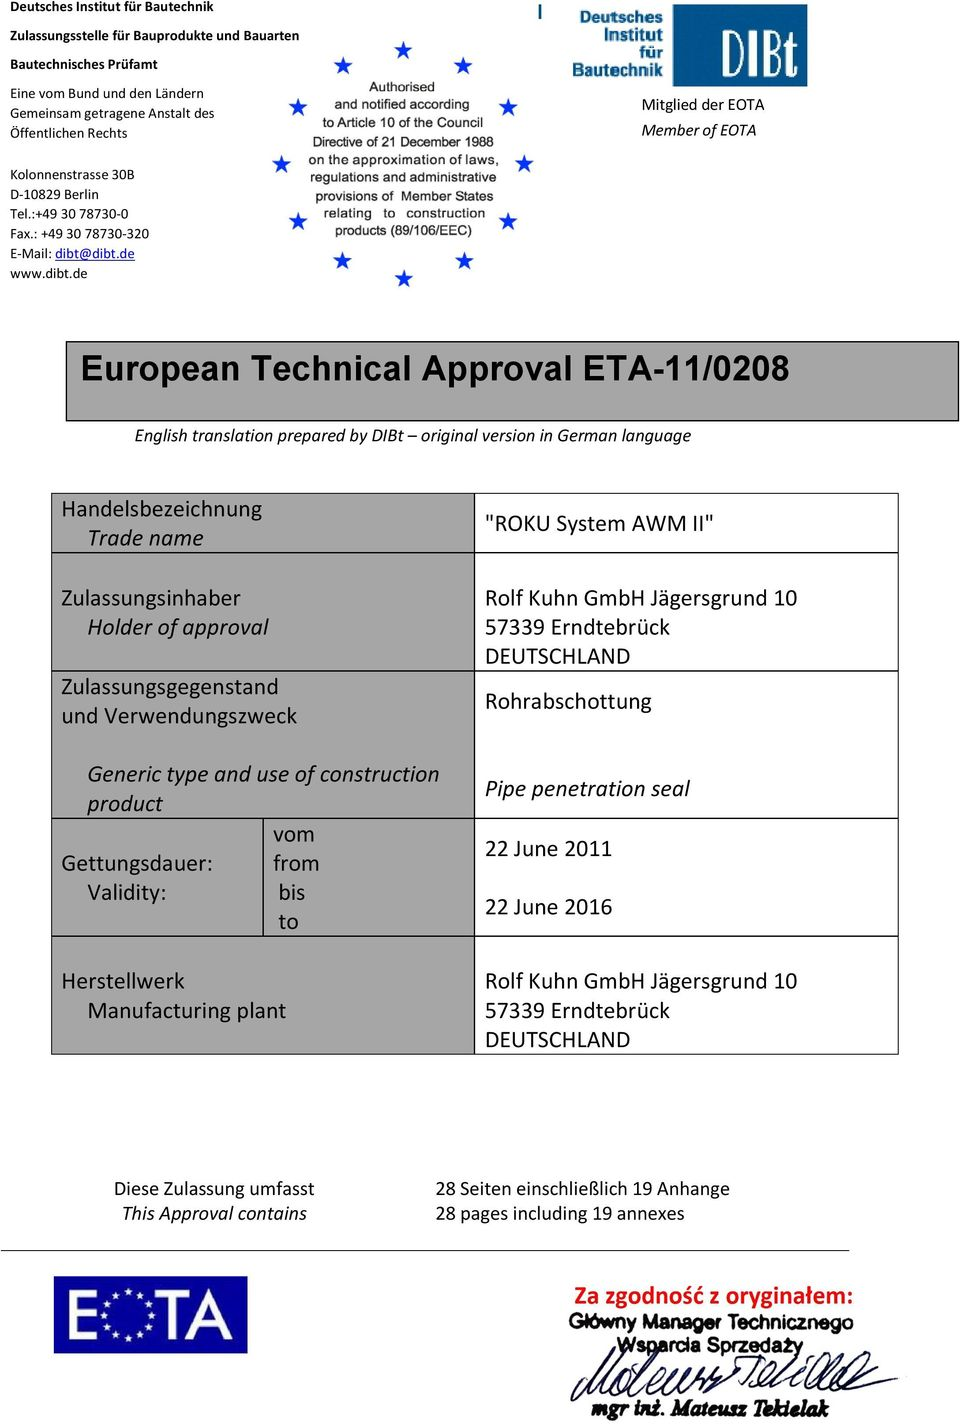 dibt.de www.dibt.de European Technical Approval English translation prepared by DIBt original version in German language Handelsbezeichnung Trade name Zulassungsinhaber Holder of approval